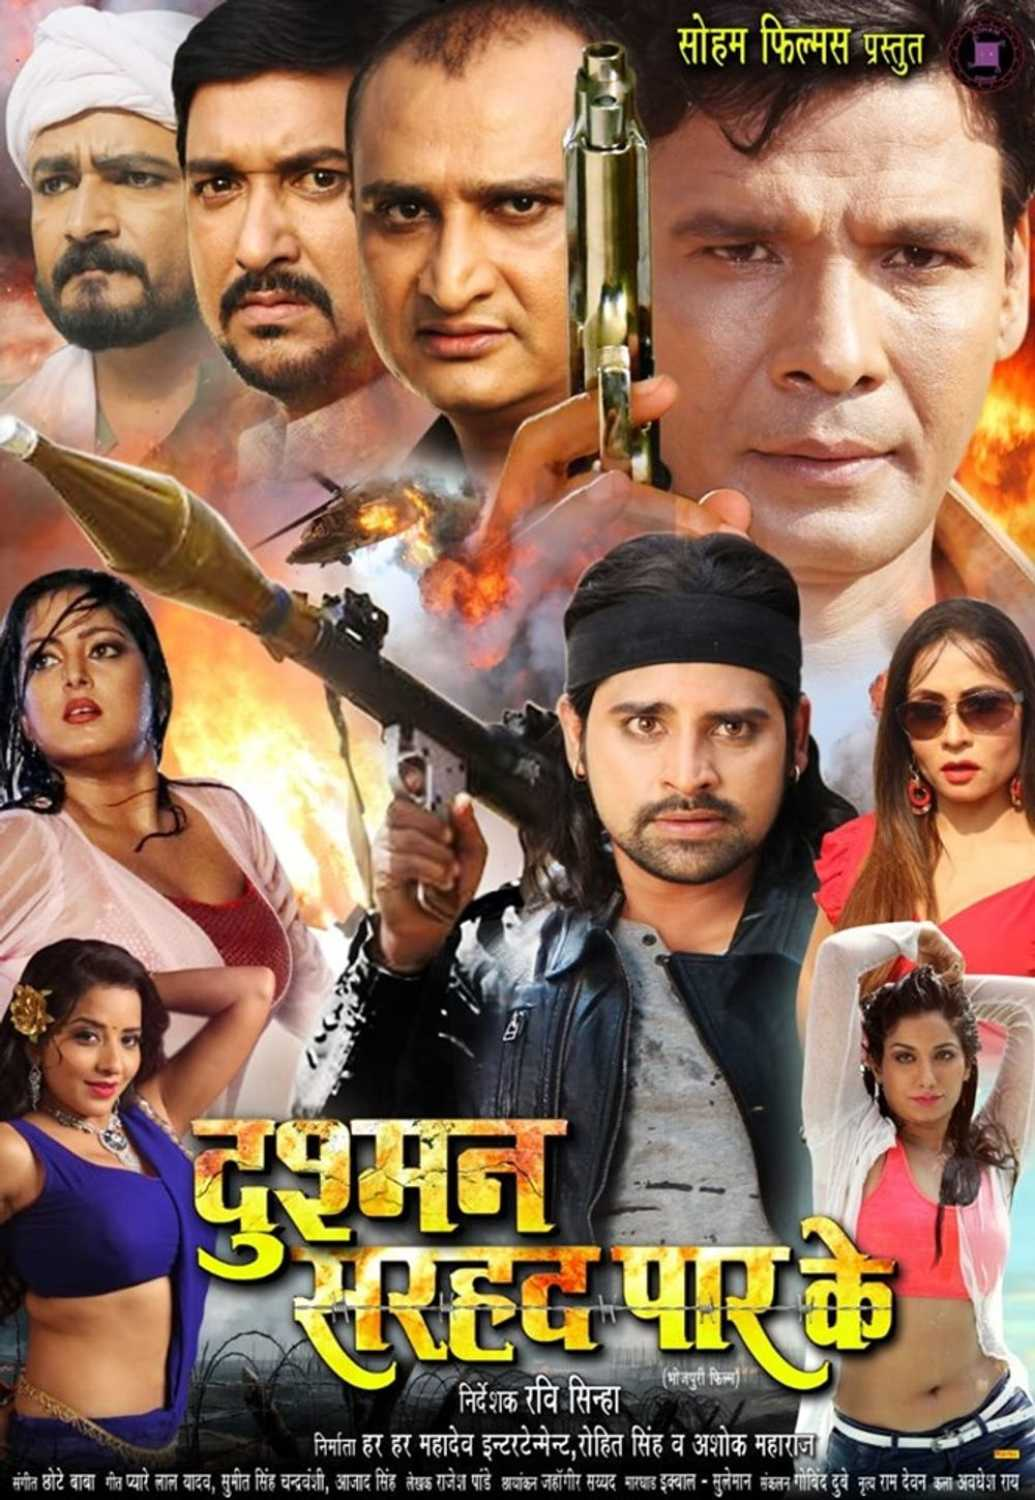 Dushman Sarhad Paar Ke (2021) Bhojpuri 480p HDRip x264 AAC 500MB Download